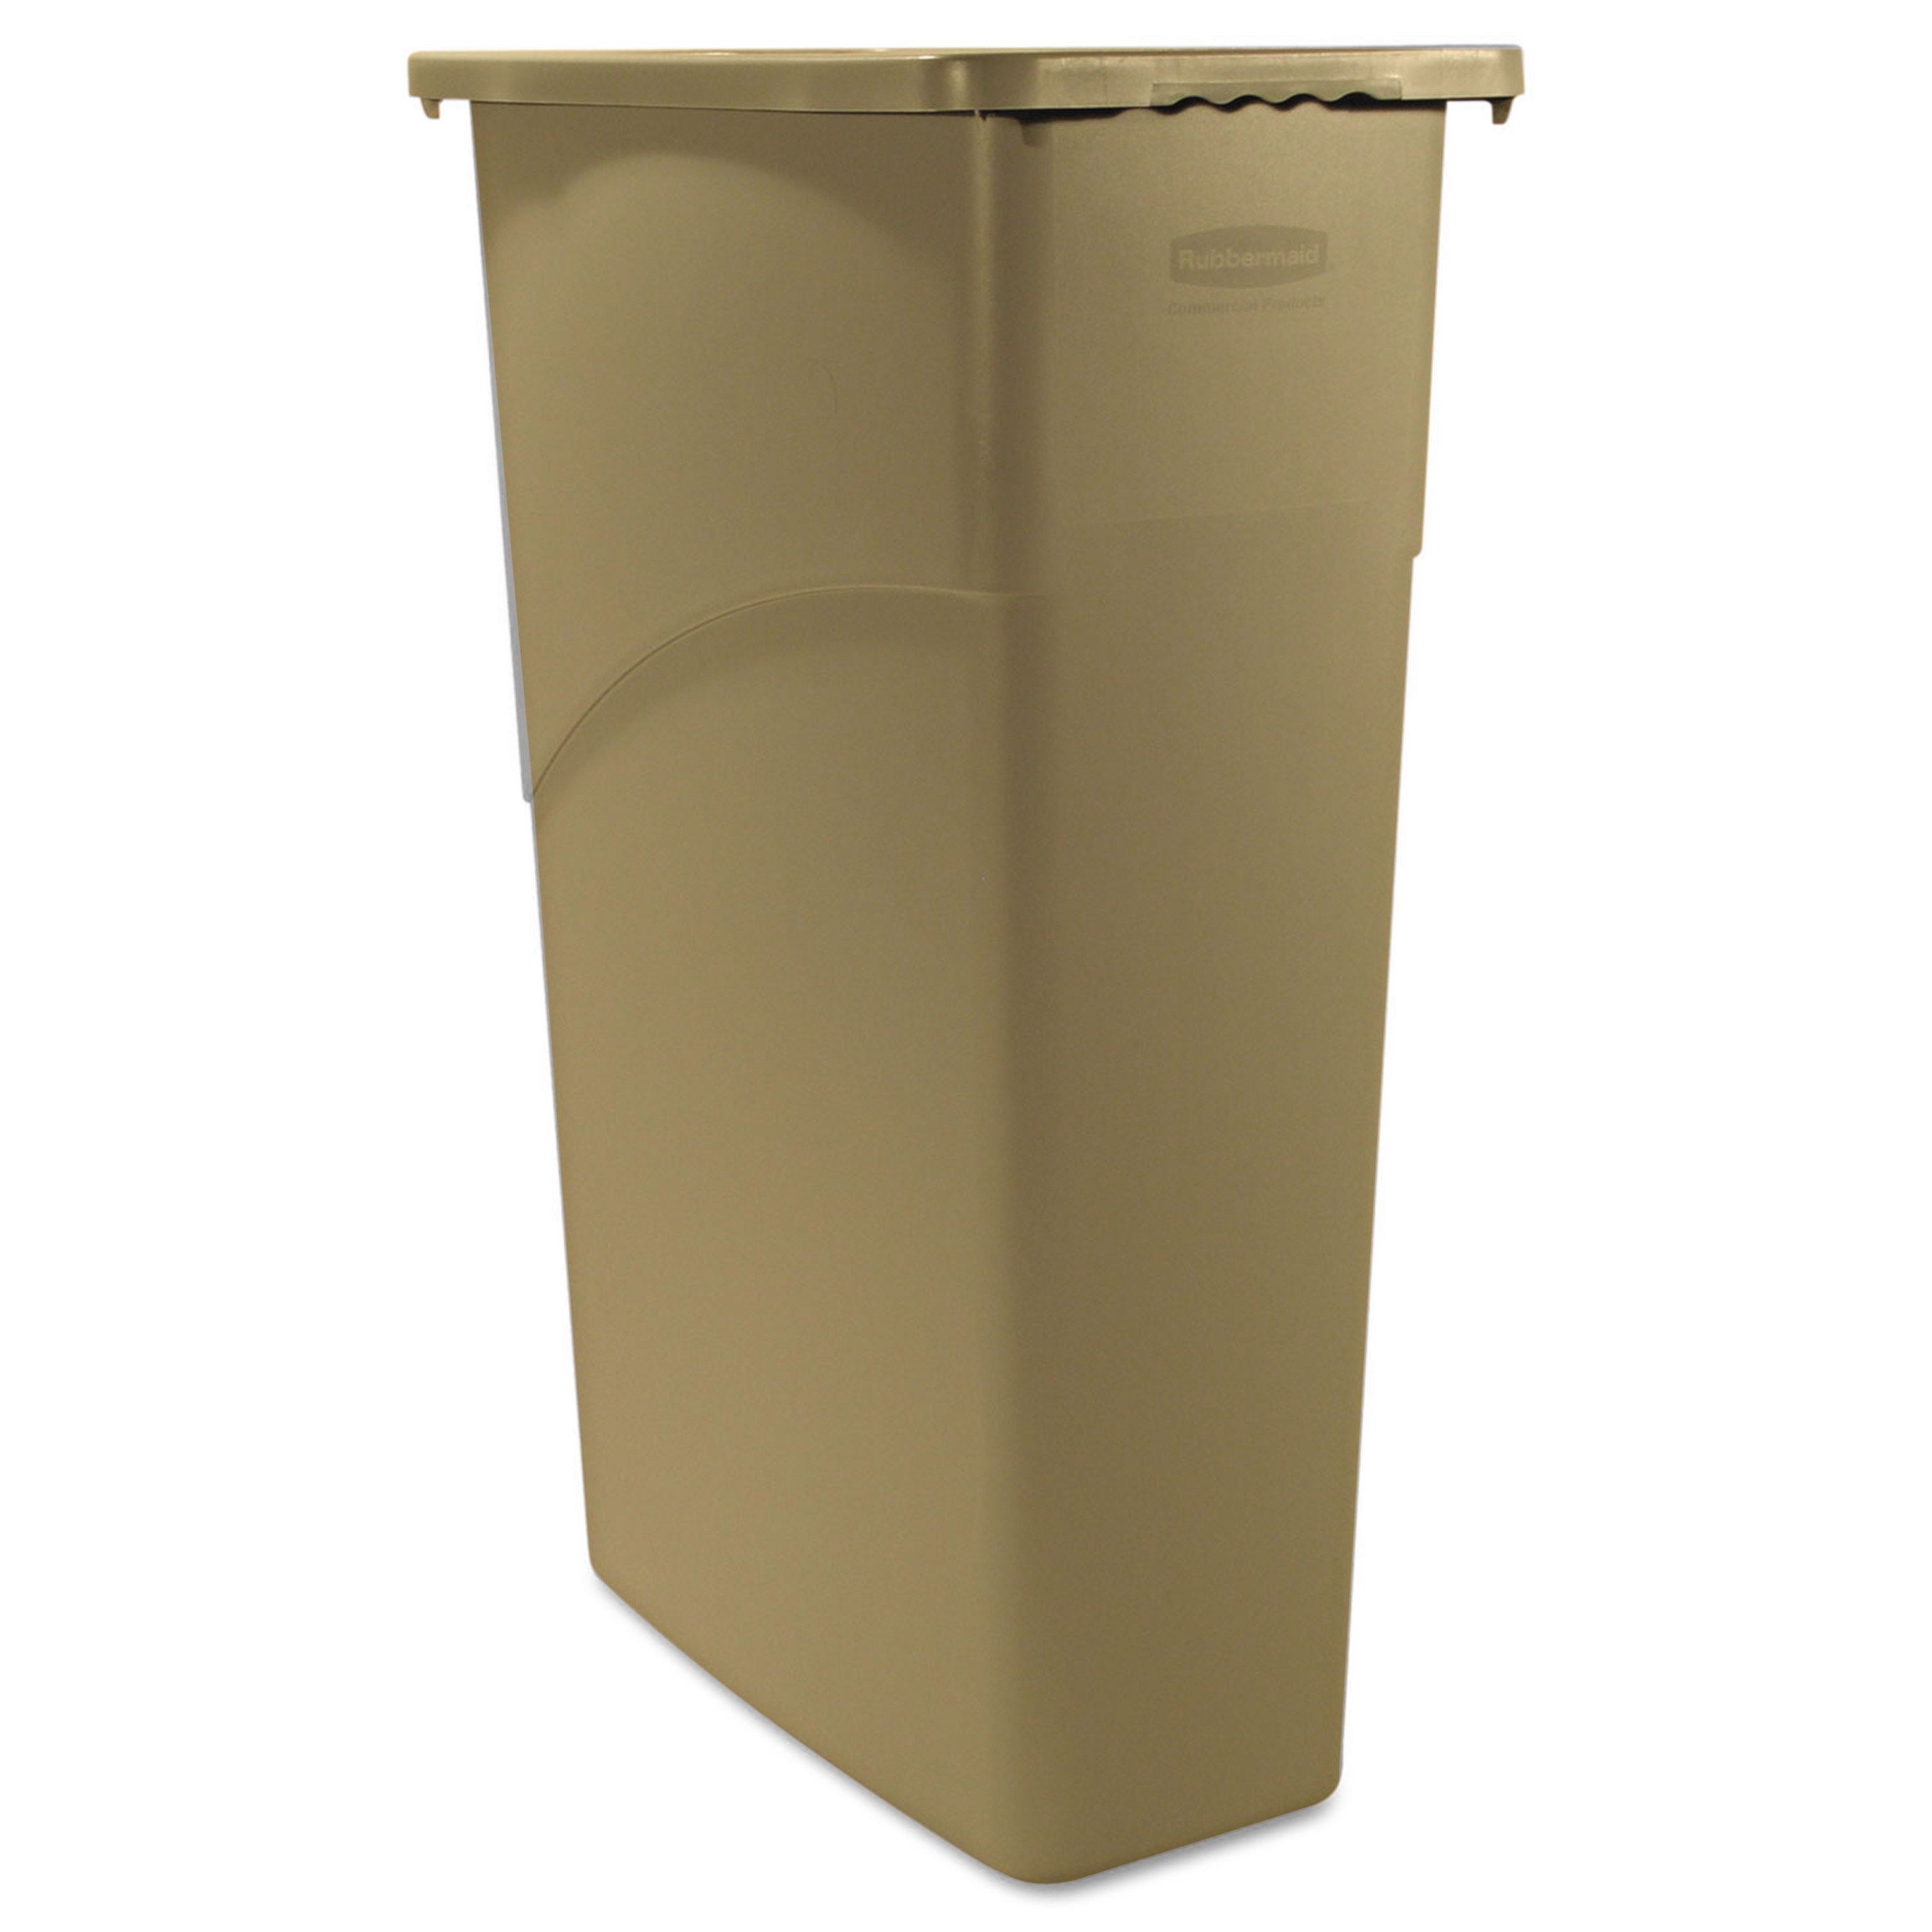 Rubbermaid Commercial Slim Jim Waste Container, Rectangul...